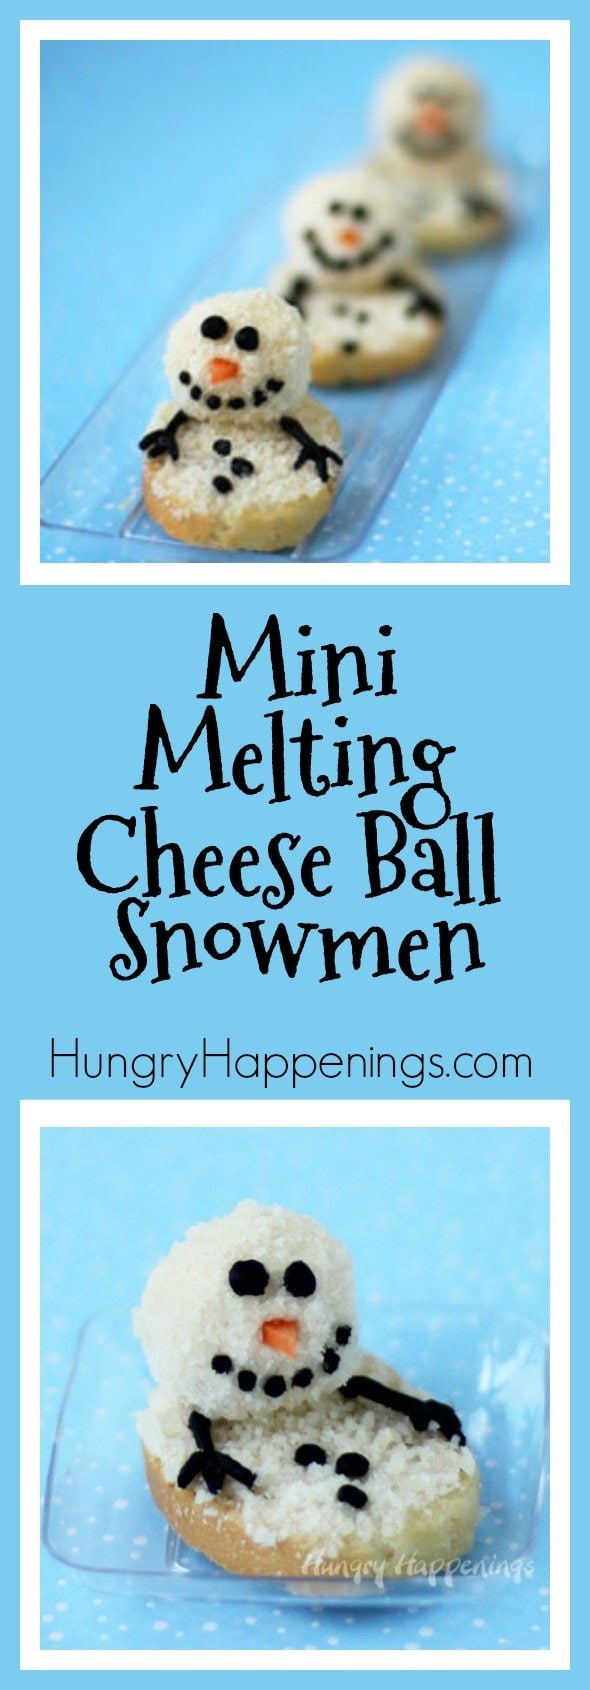 I'm helping my mom plan her Christmas Eve party and spent some time yesterday playing around with a few appetizer recipes and had a blast making Mini Melting Snowman Cheese Balls.